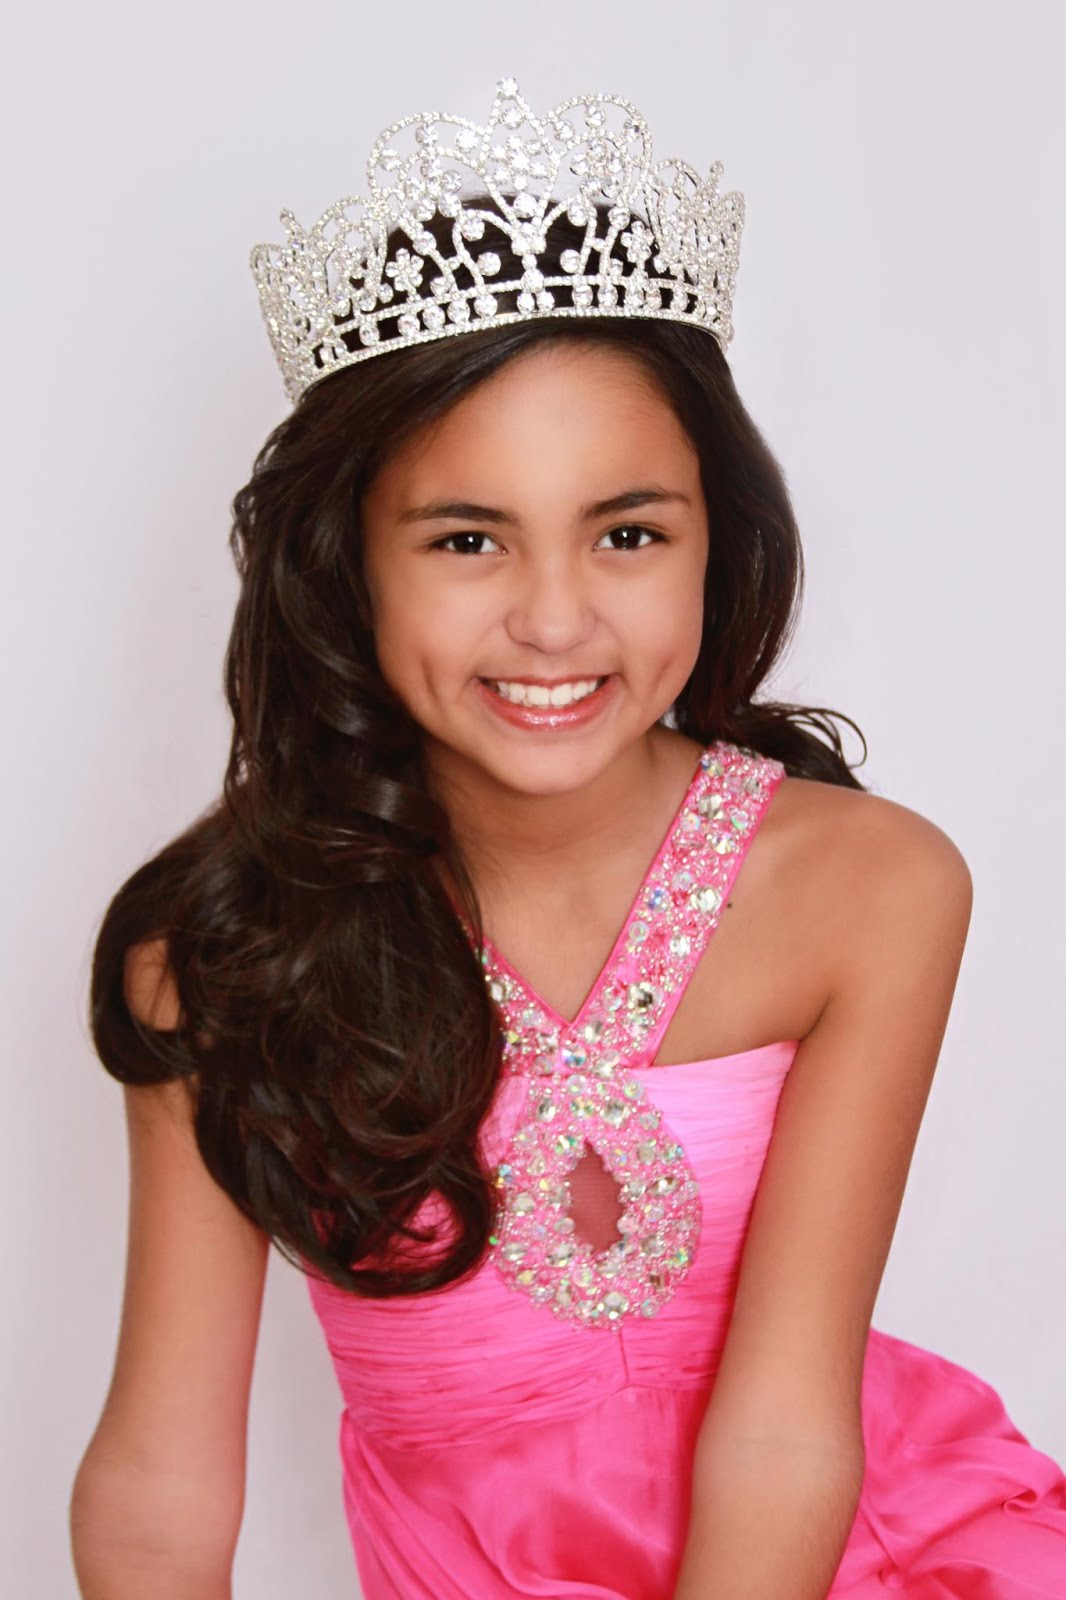 Meet the 2012-2013 National American Miss Jr PreTeen Selia Rendon